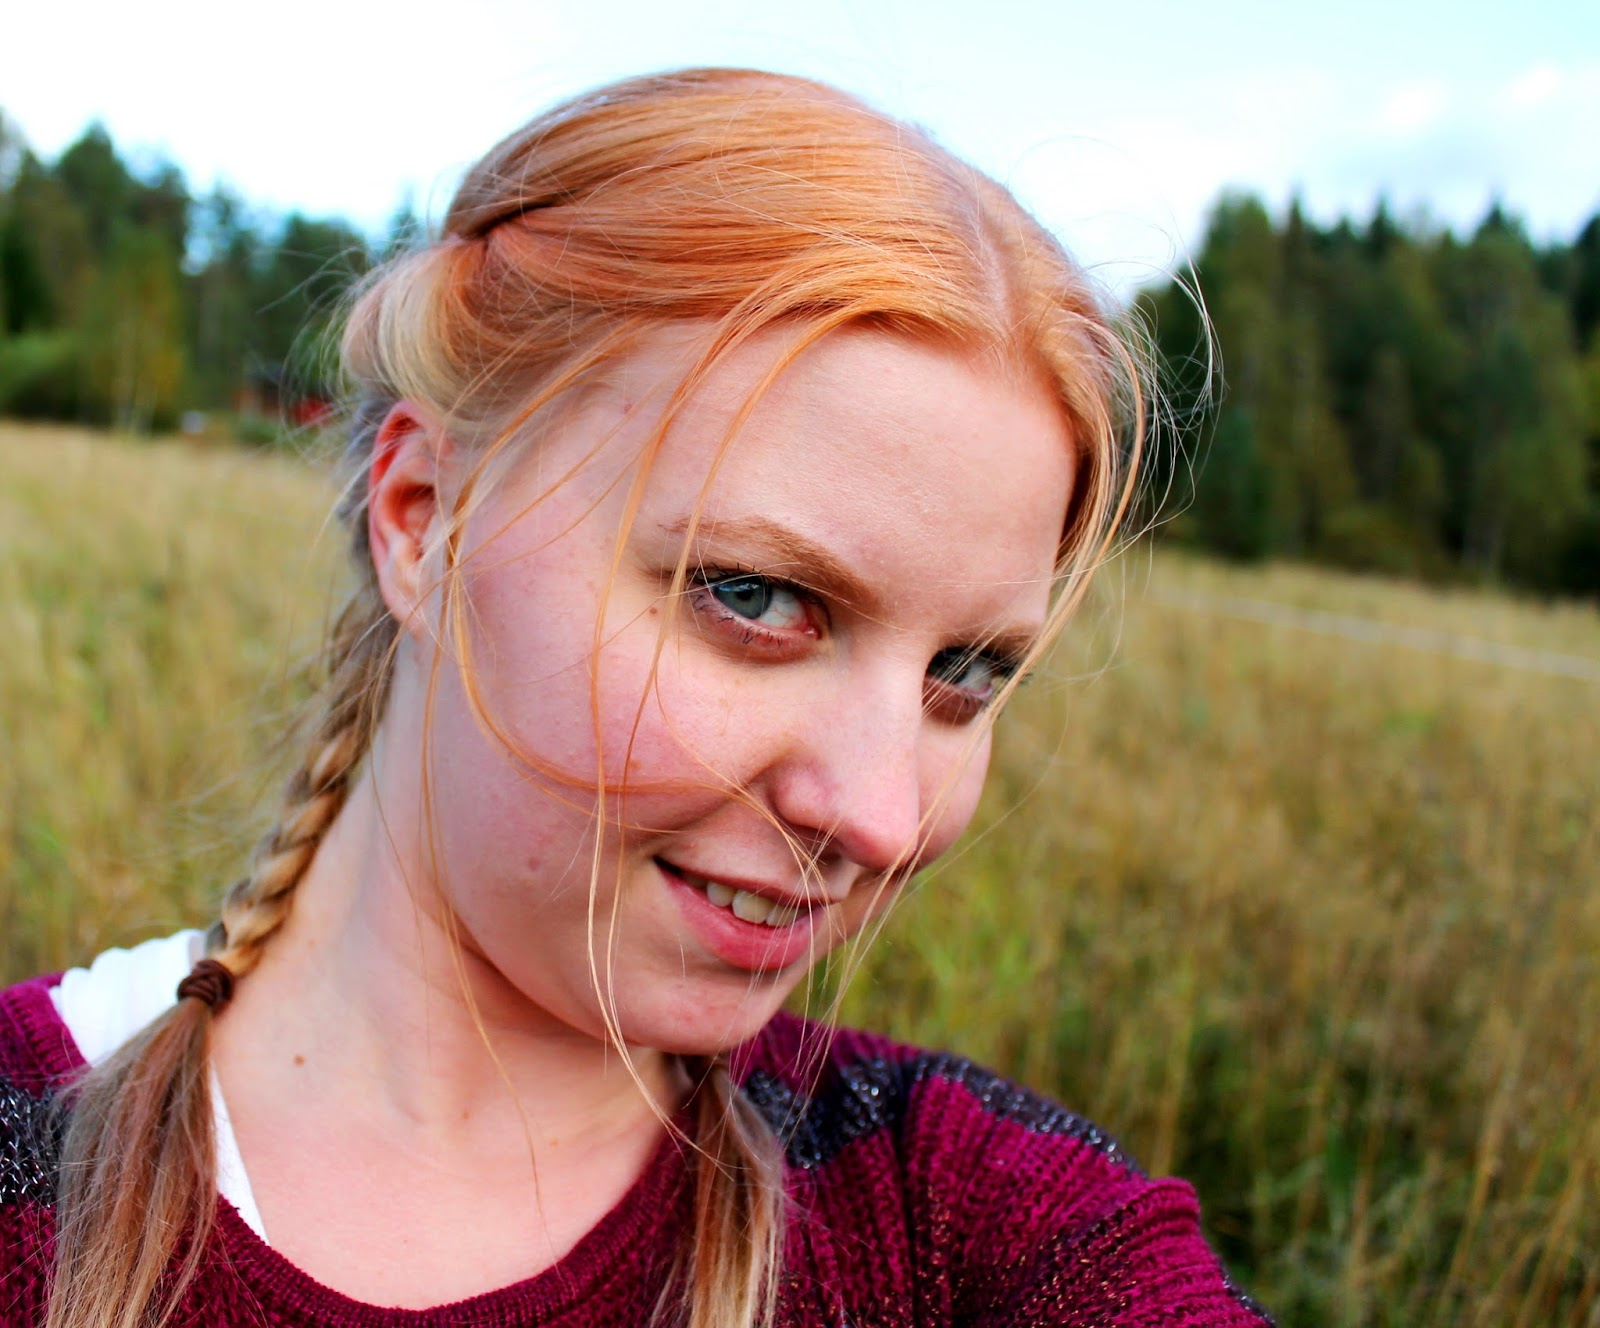 #finland #fields #beauty #bautiful #girl #field #nature #landscape #scape #elovena #smile #summer #autumn #august #wonderful